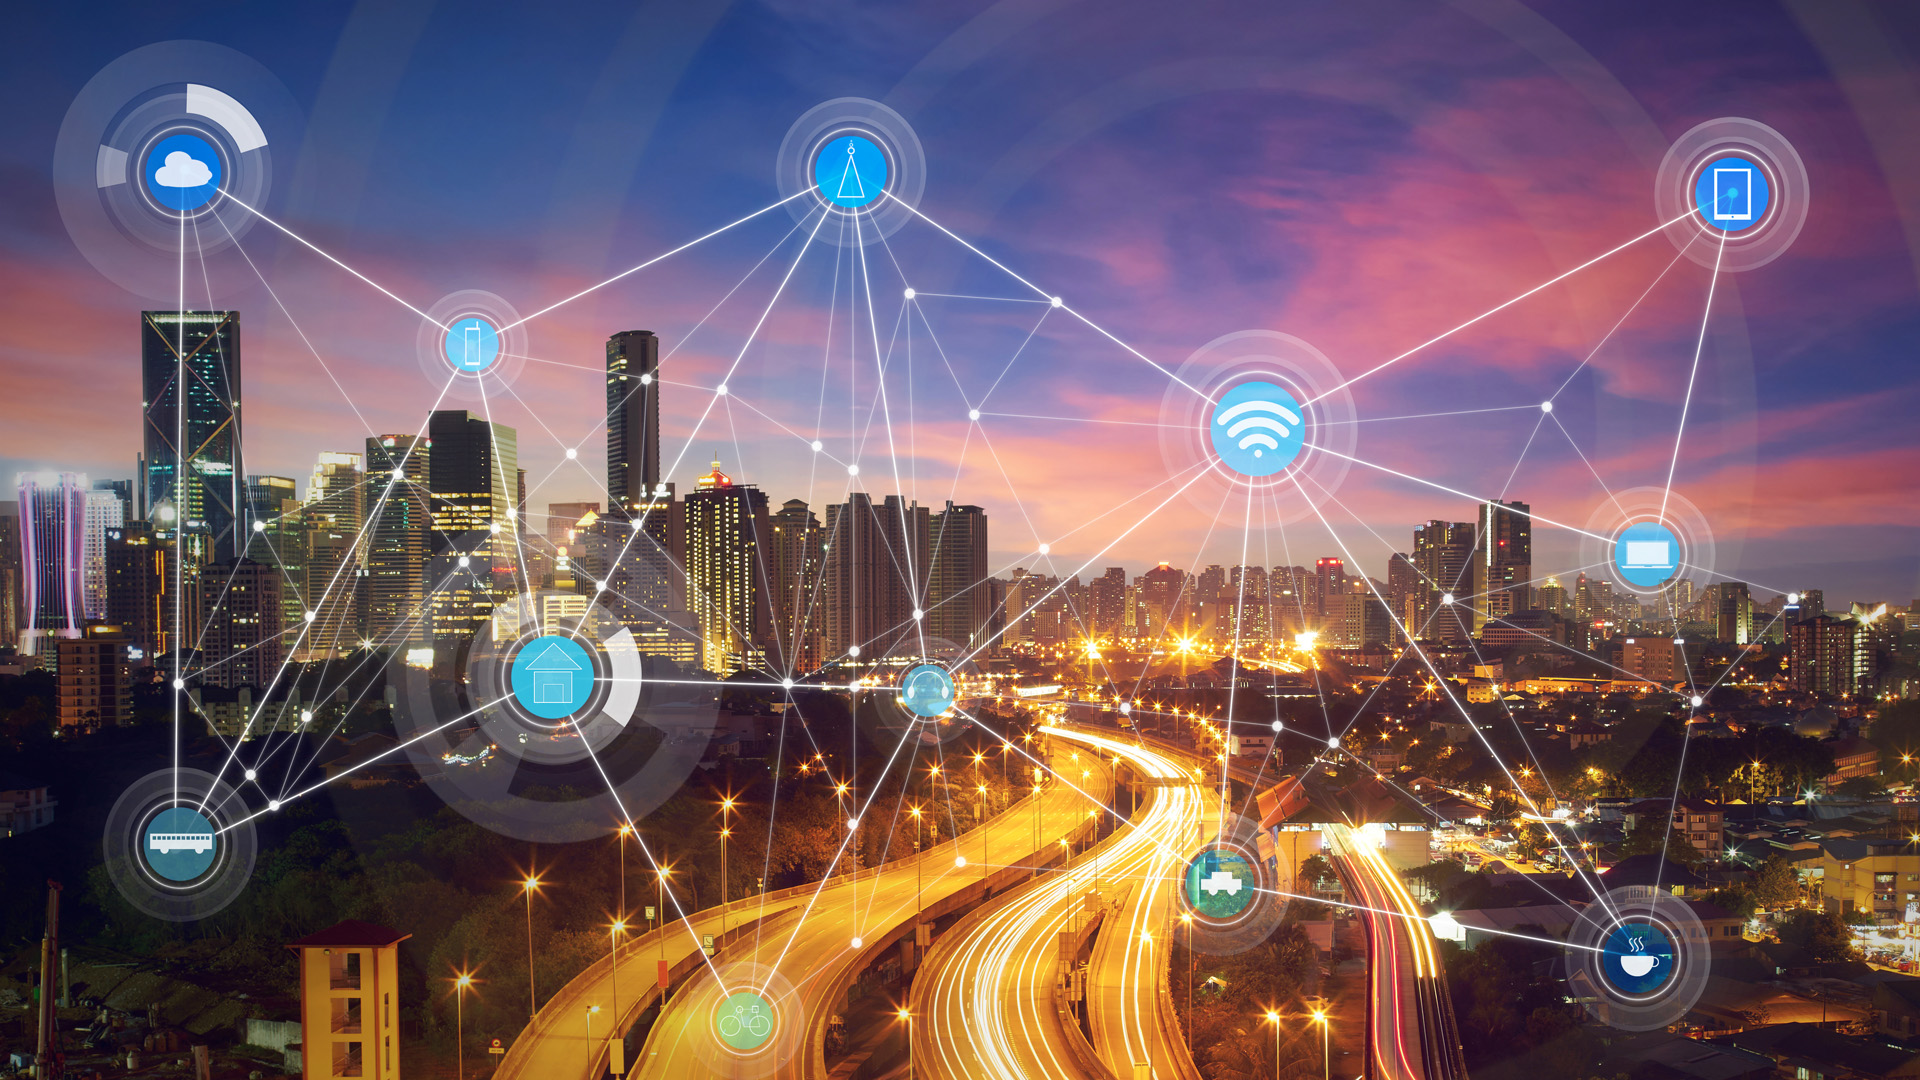 Smart solutions needed to connect the Smart Cities of the future